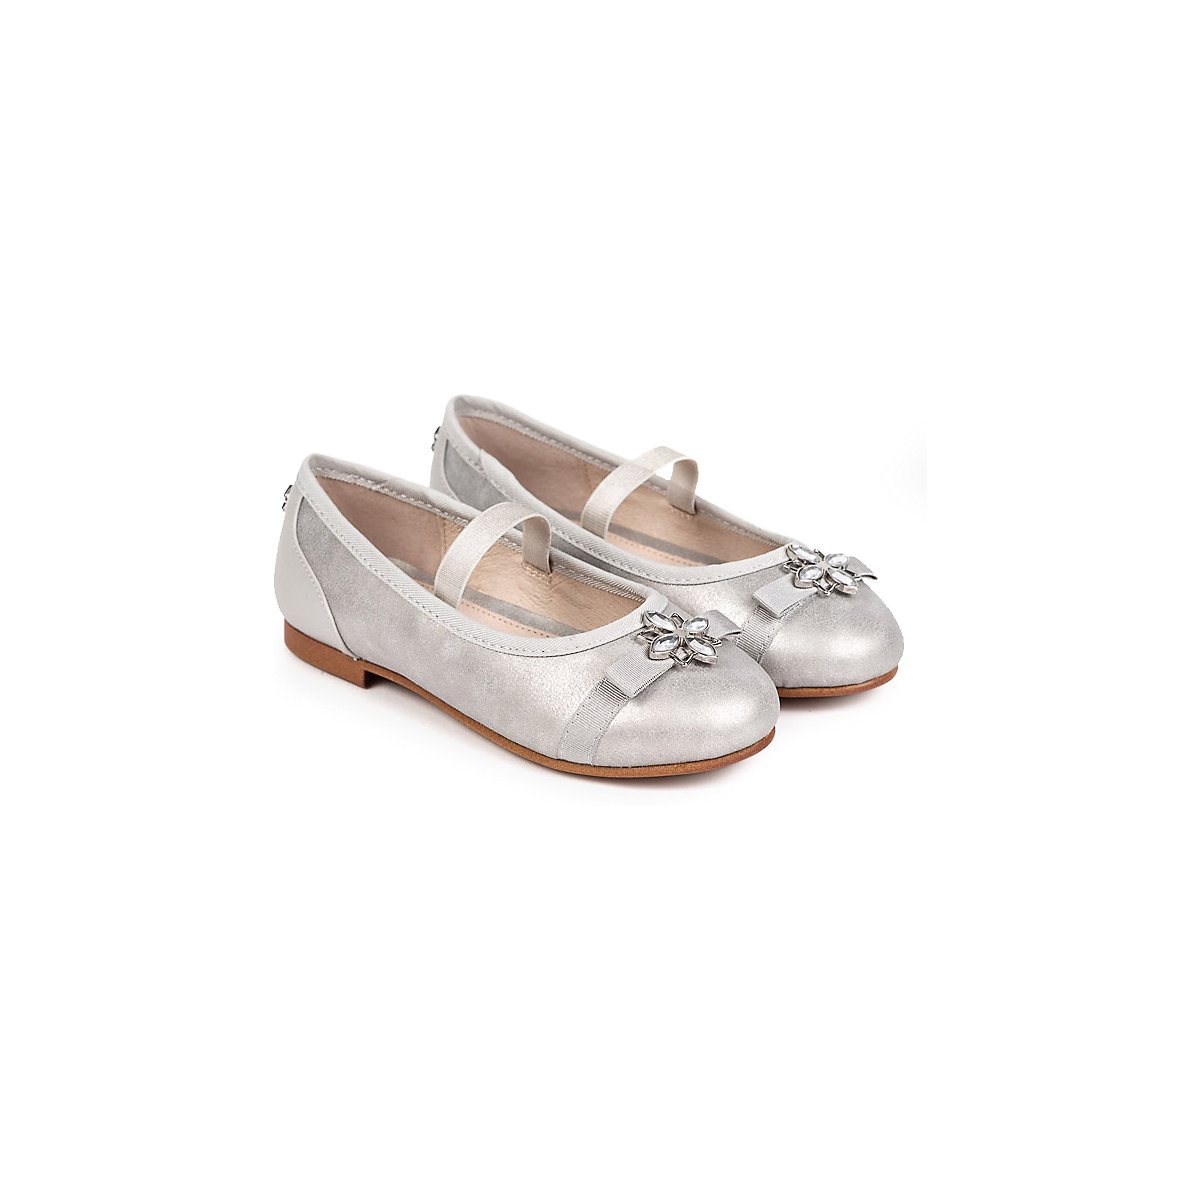 MAYORAL Children's Flats 10642689 silver summer ballet all-season elegant footwear Shoes for girls girl